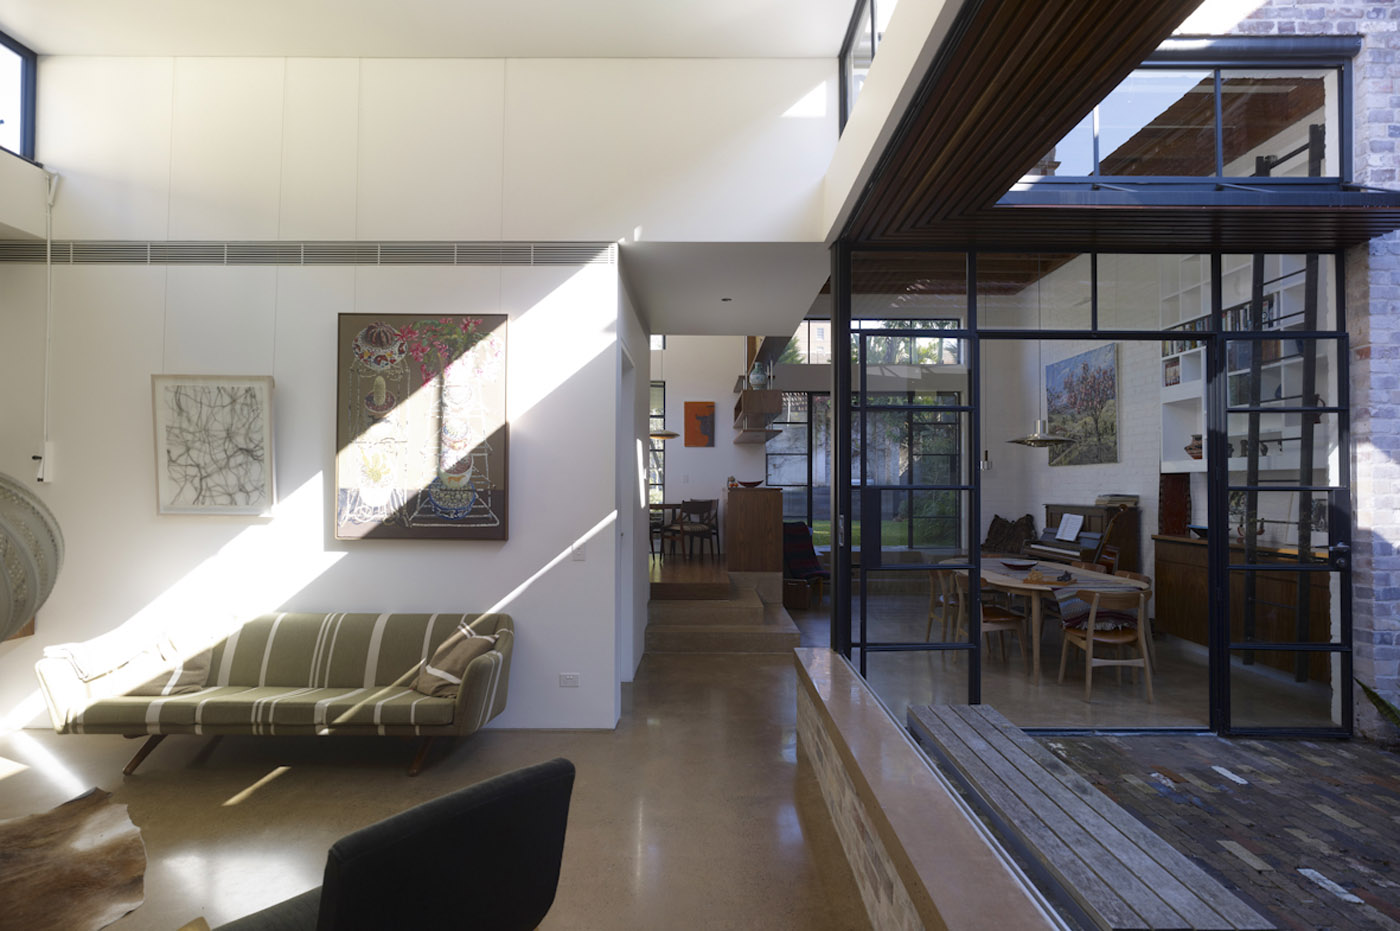 Smee Schoff House by award winning Sydney residential architecture firm Sam Crawford Architects. View to open living space with skylight brings sun to the interior